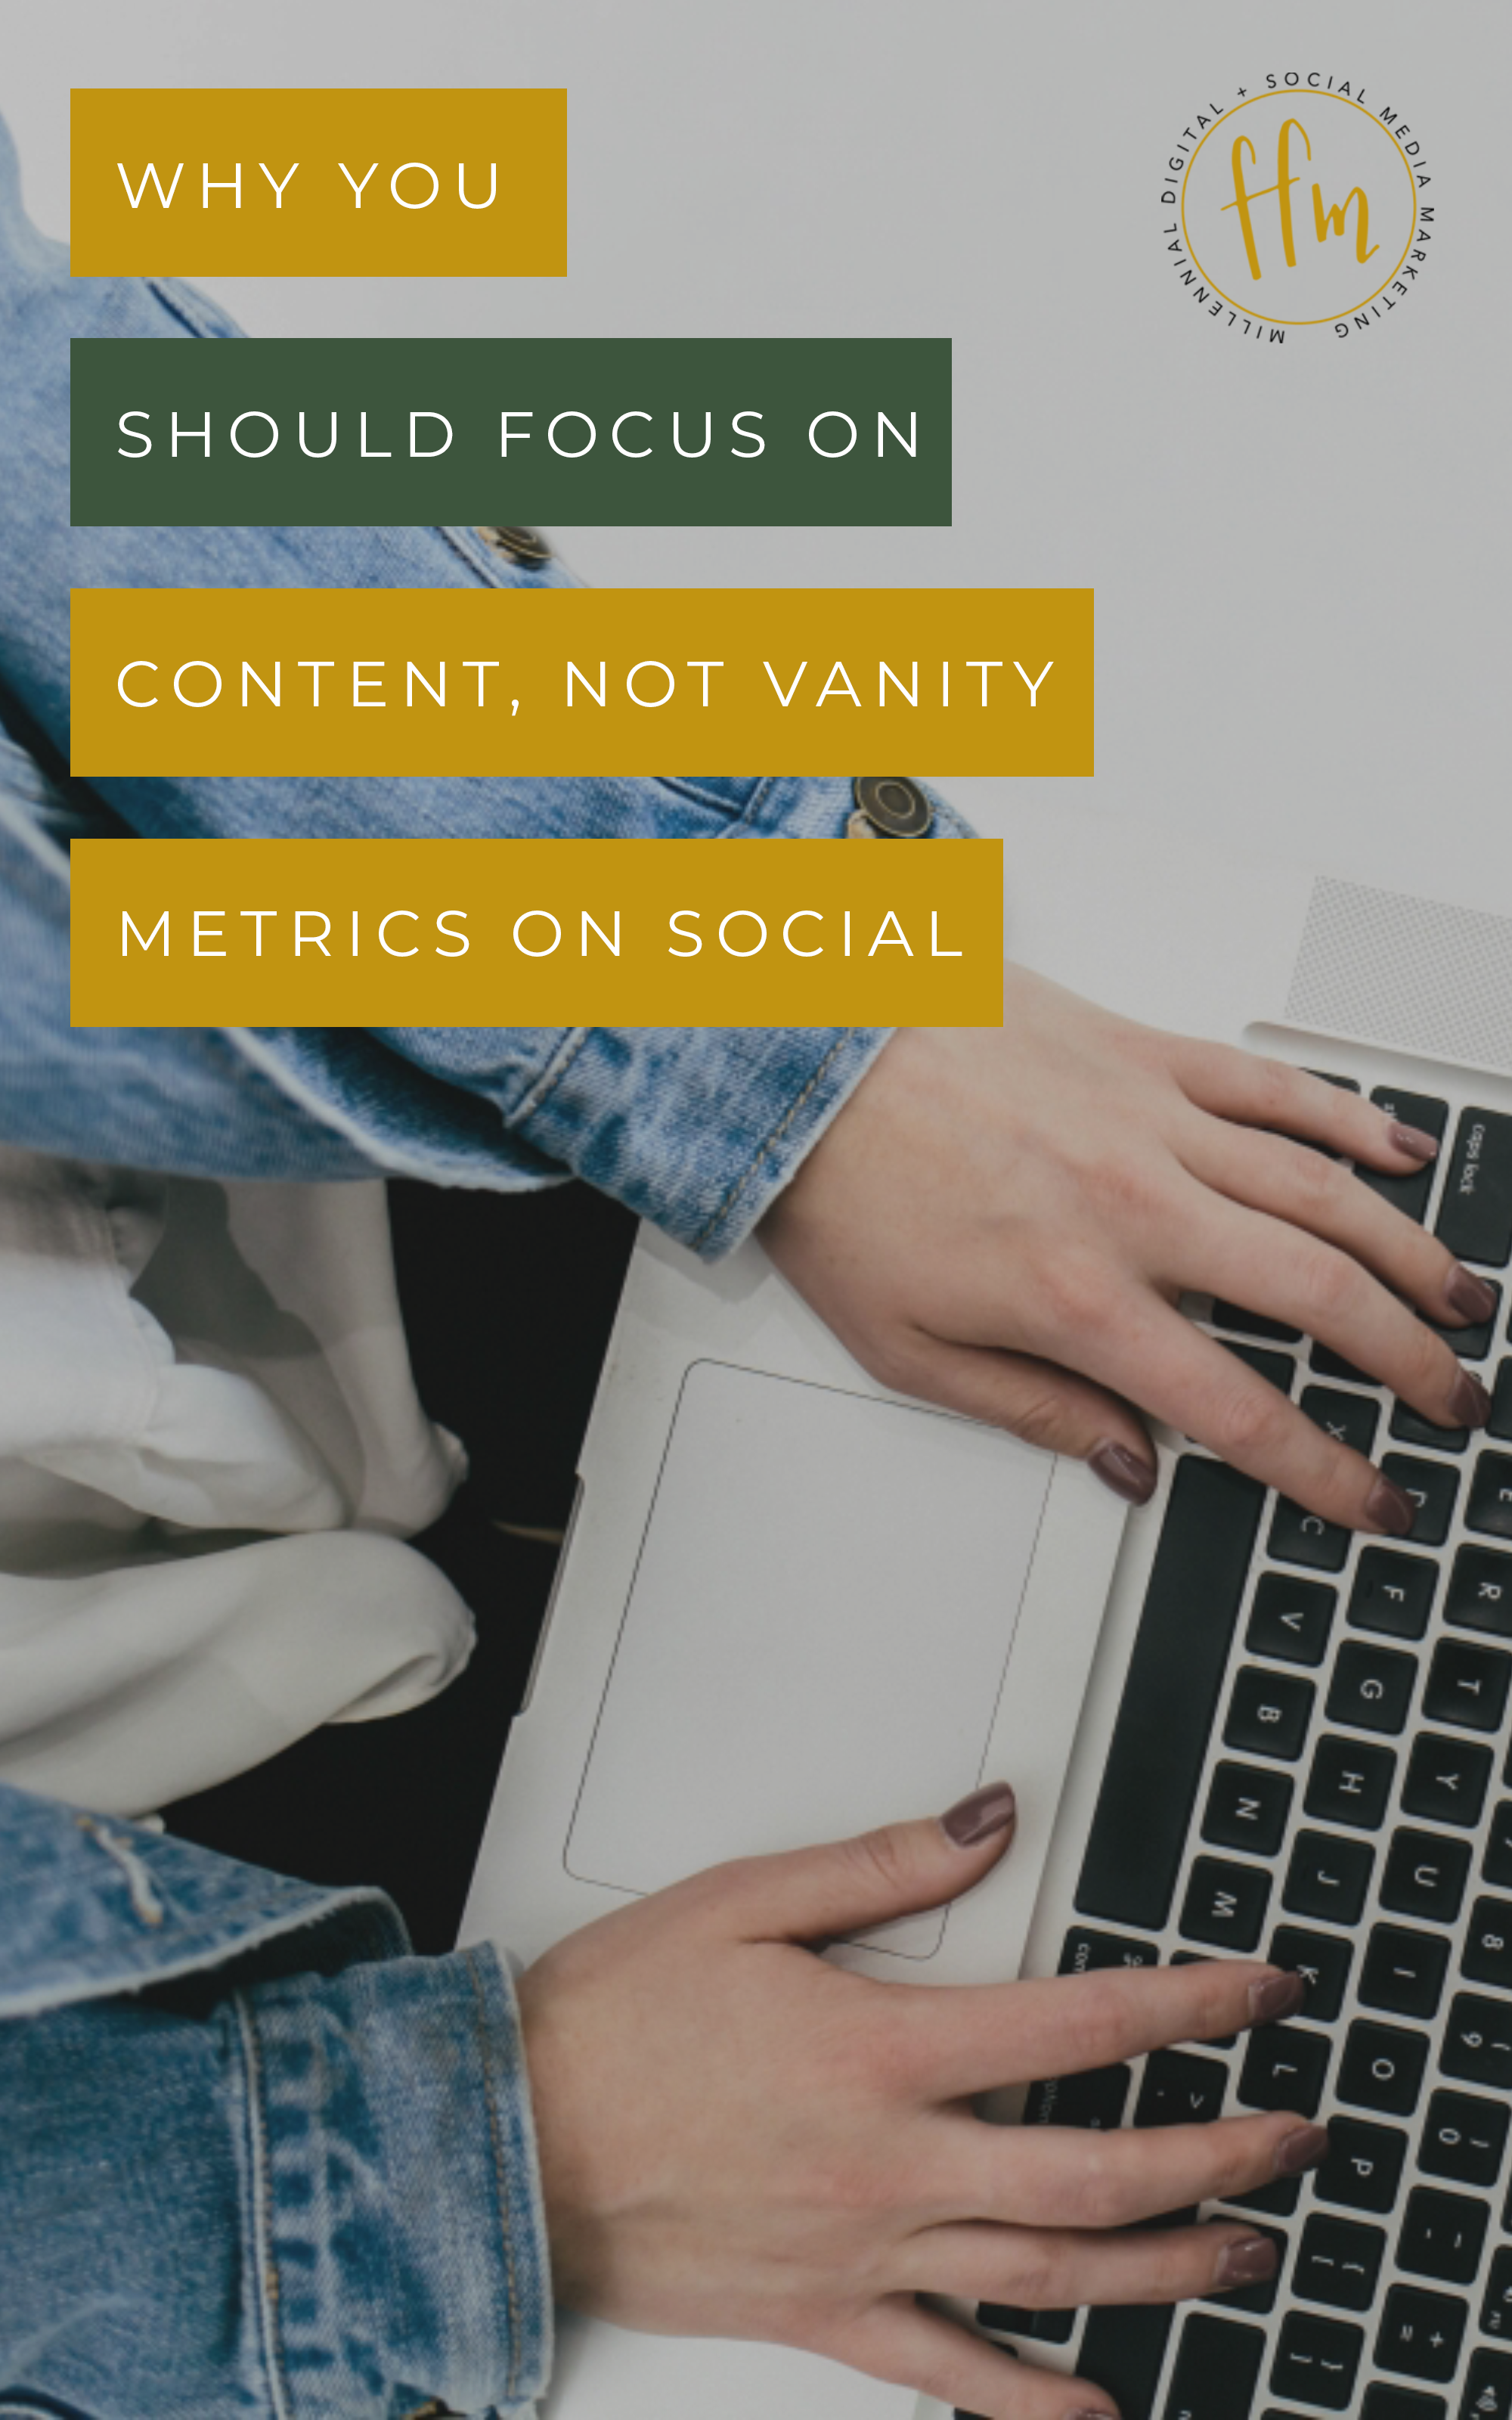 Why You Should Focus on Content, Not Vanity Metrics